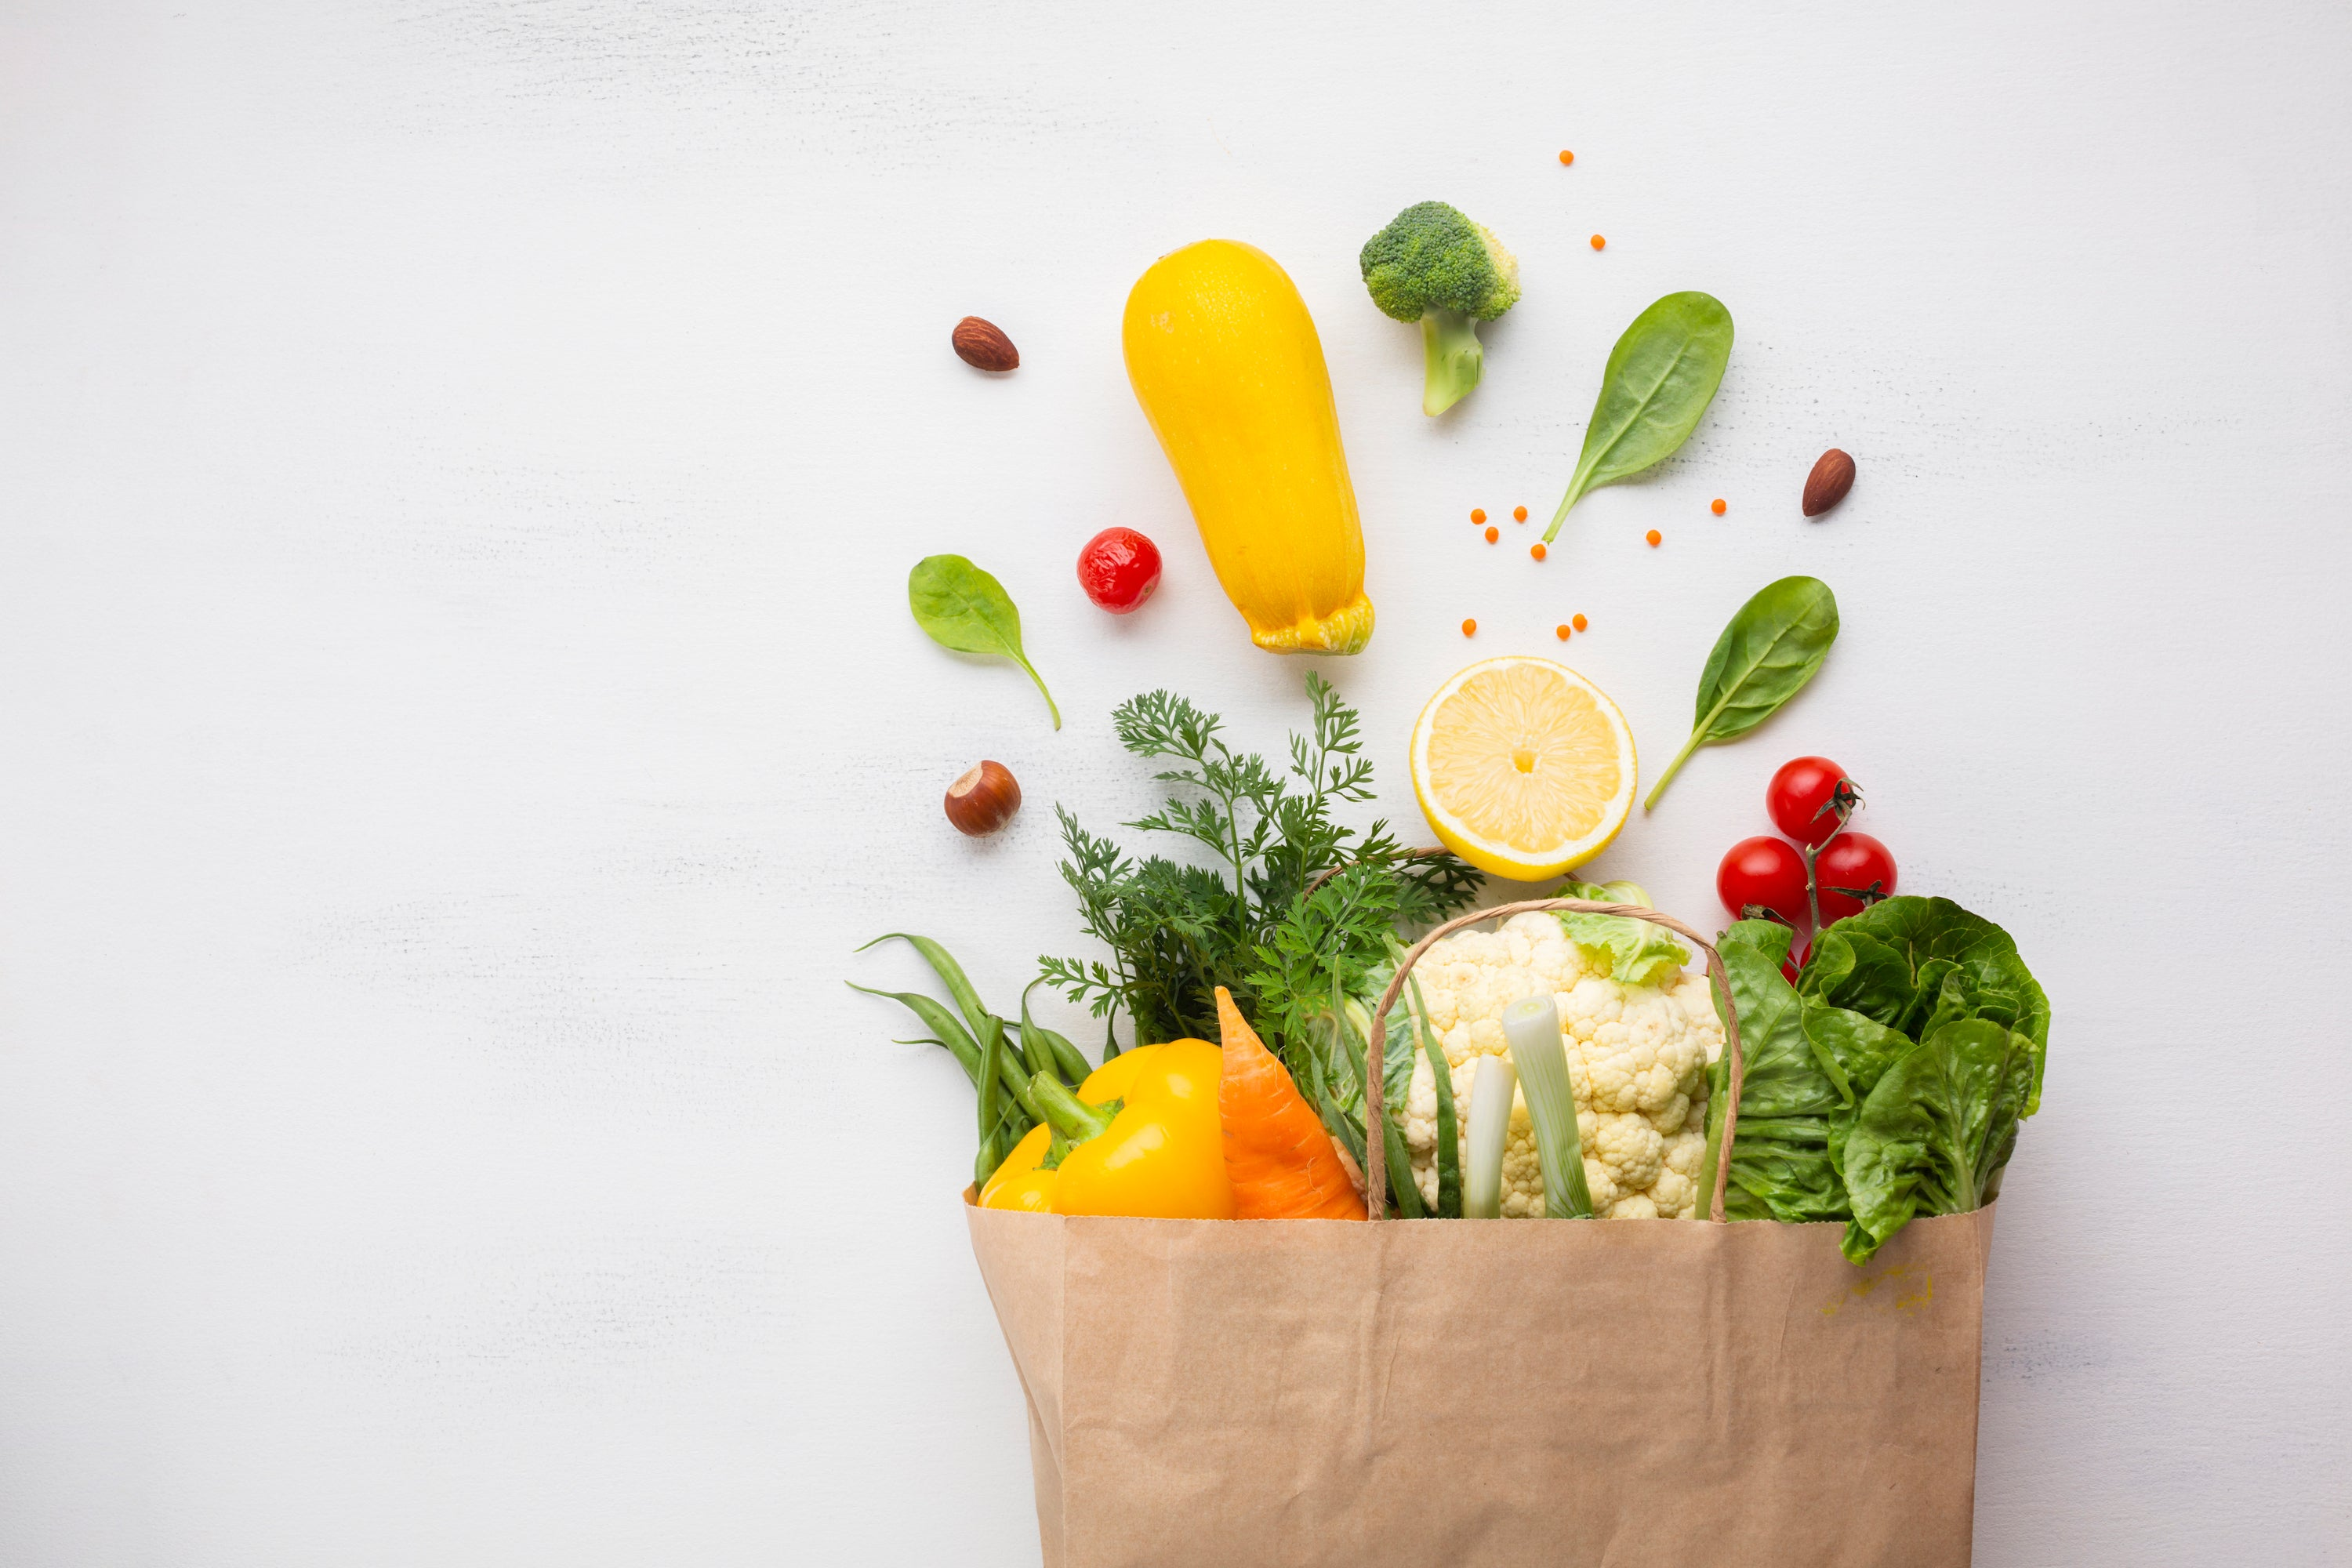 Vegetables in Bag, What Produce is in Season in Autumn?